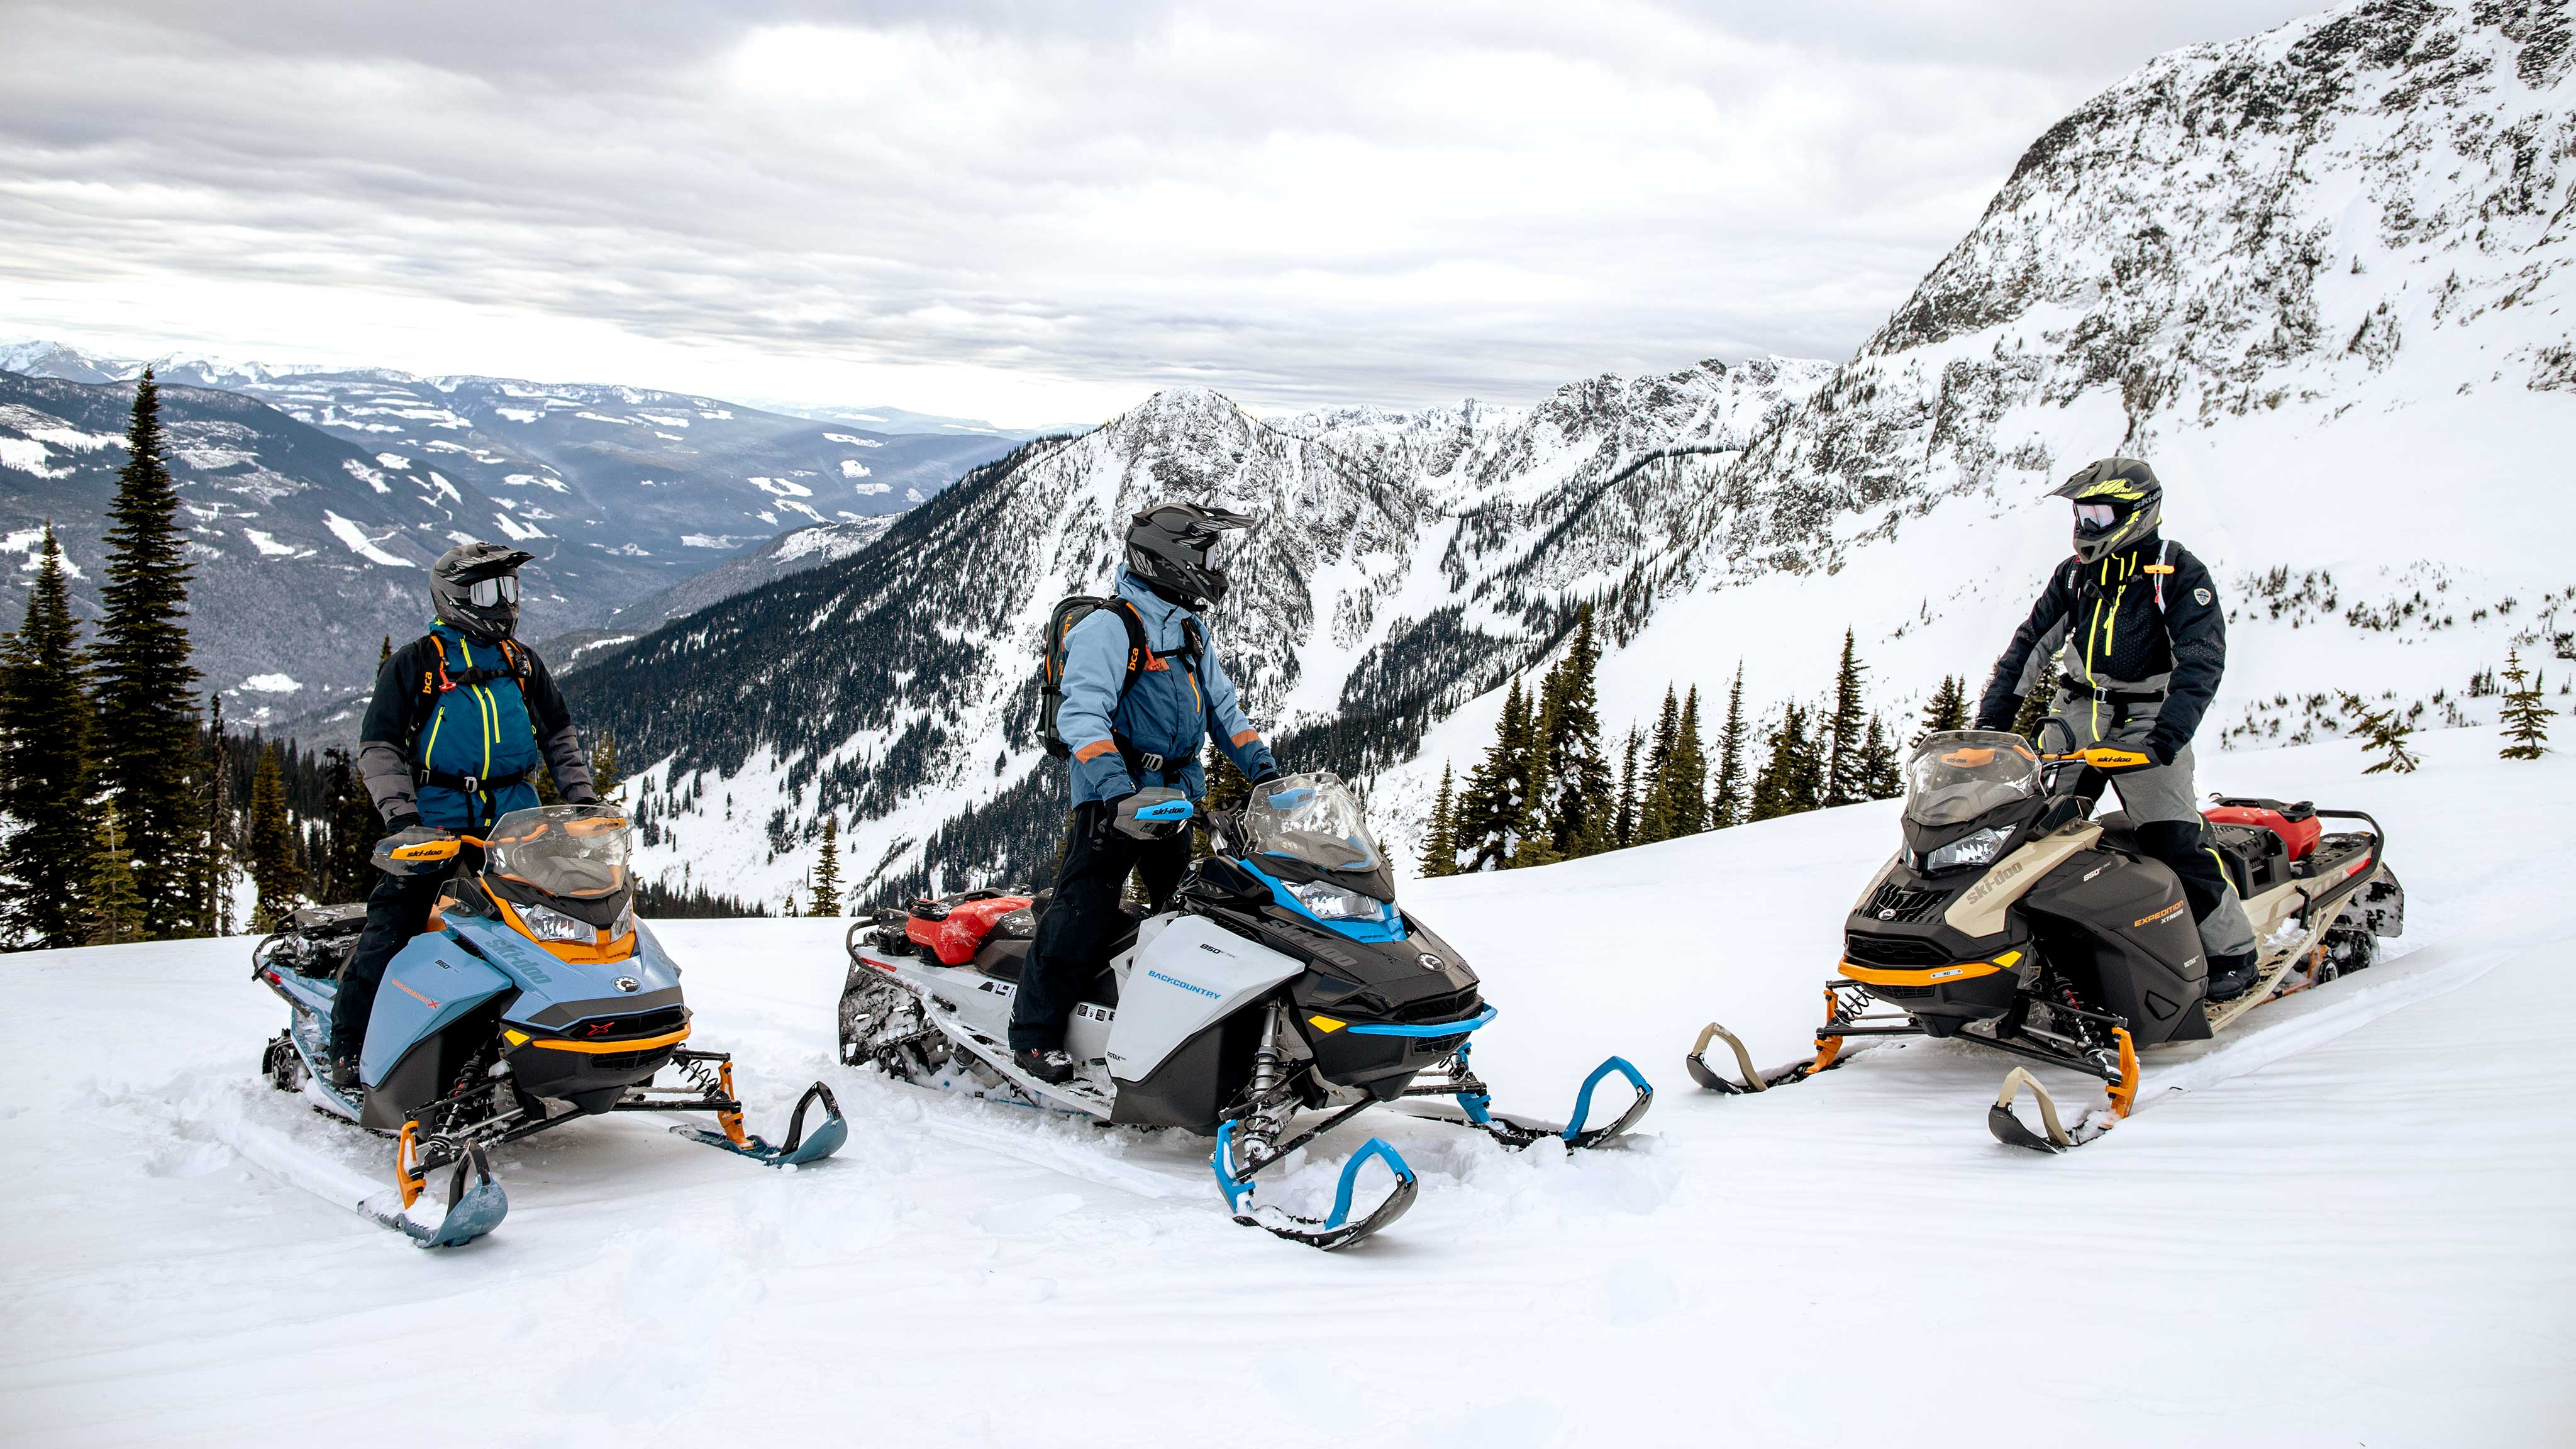 Get a loan offer for a ski-doo